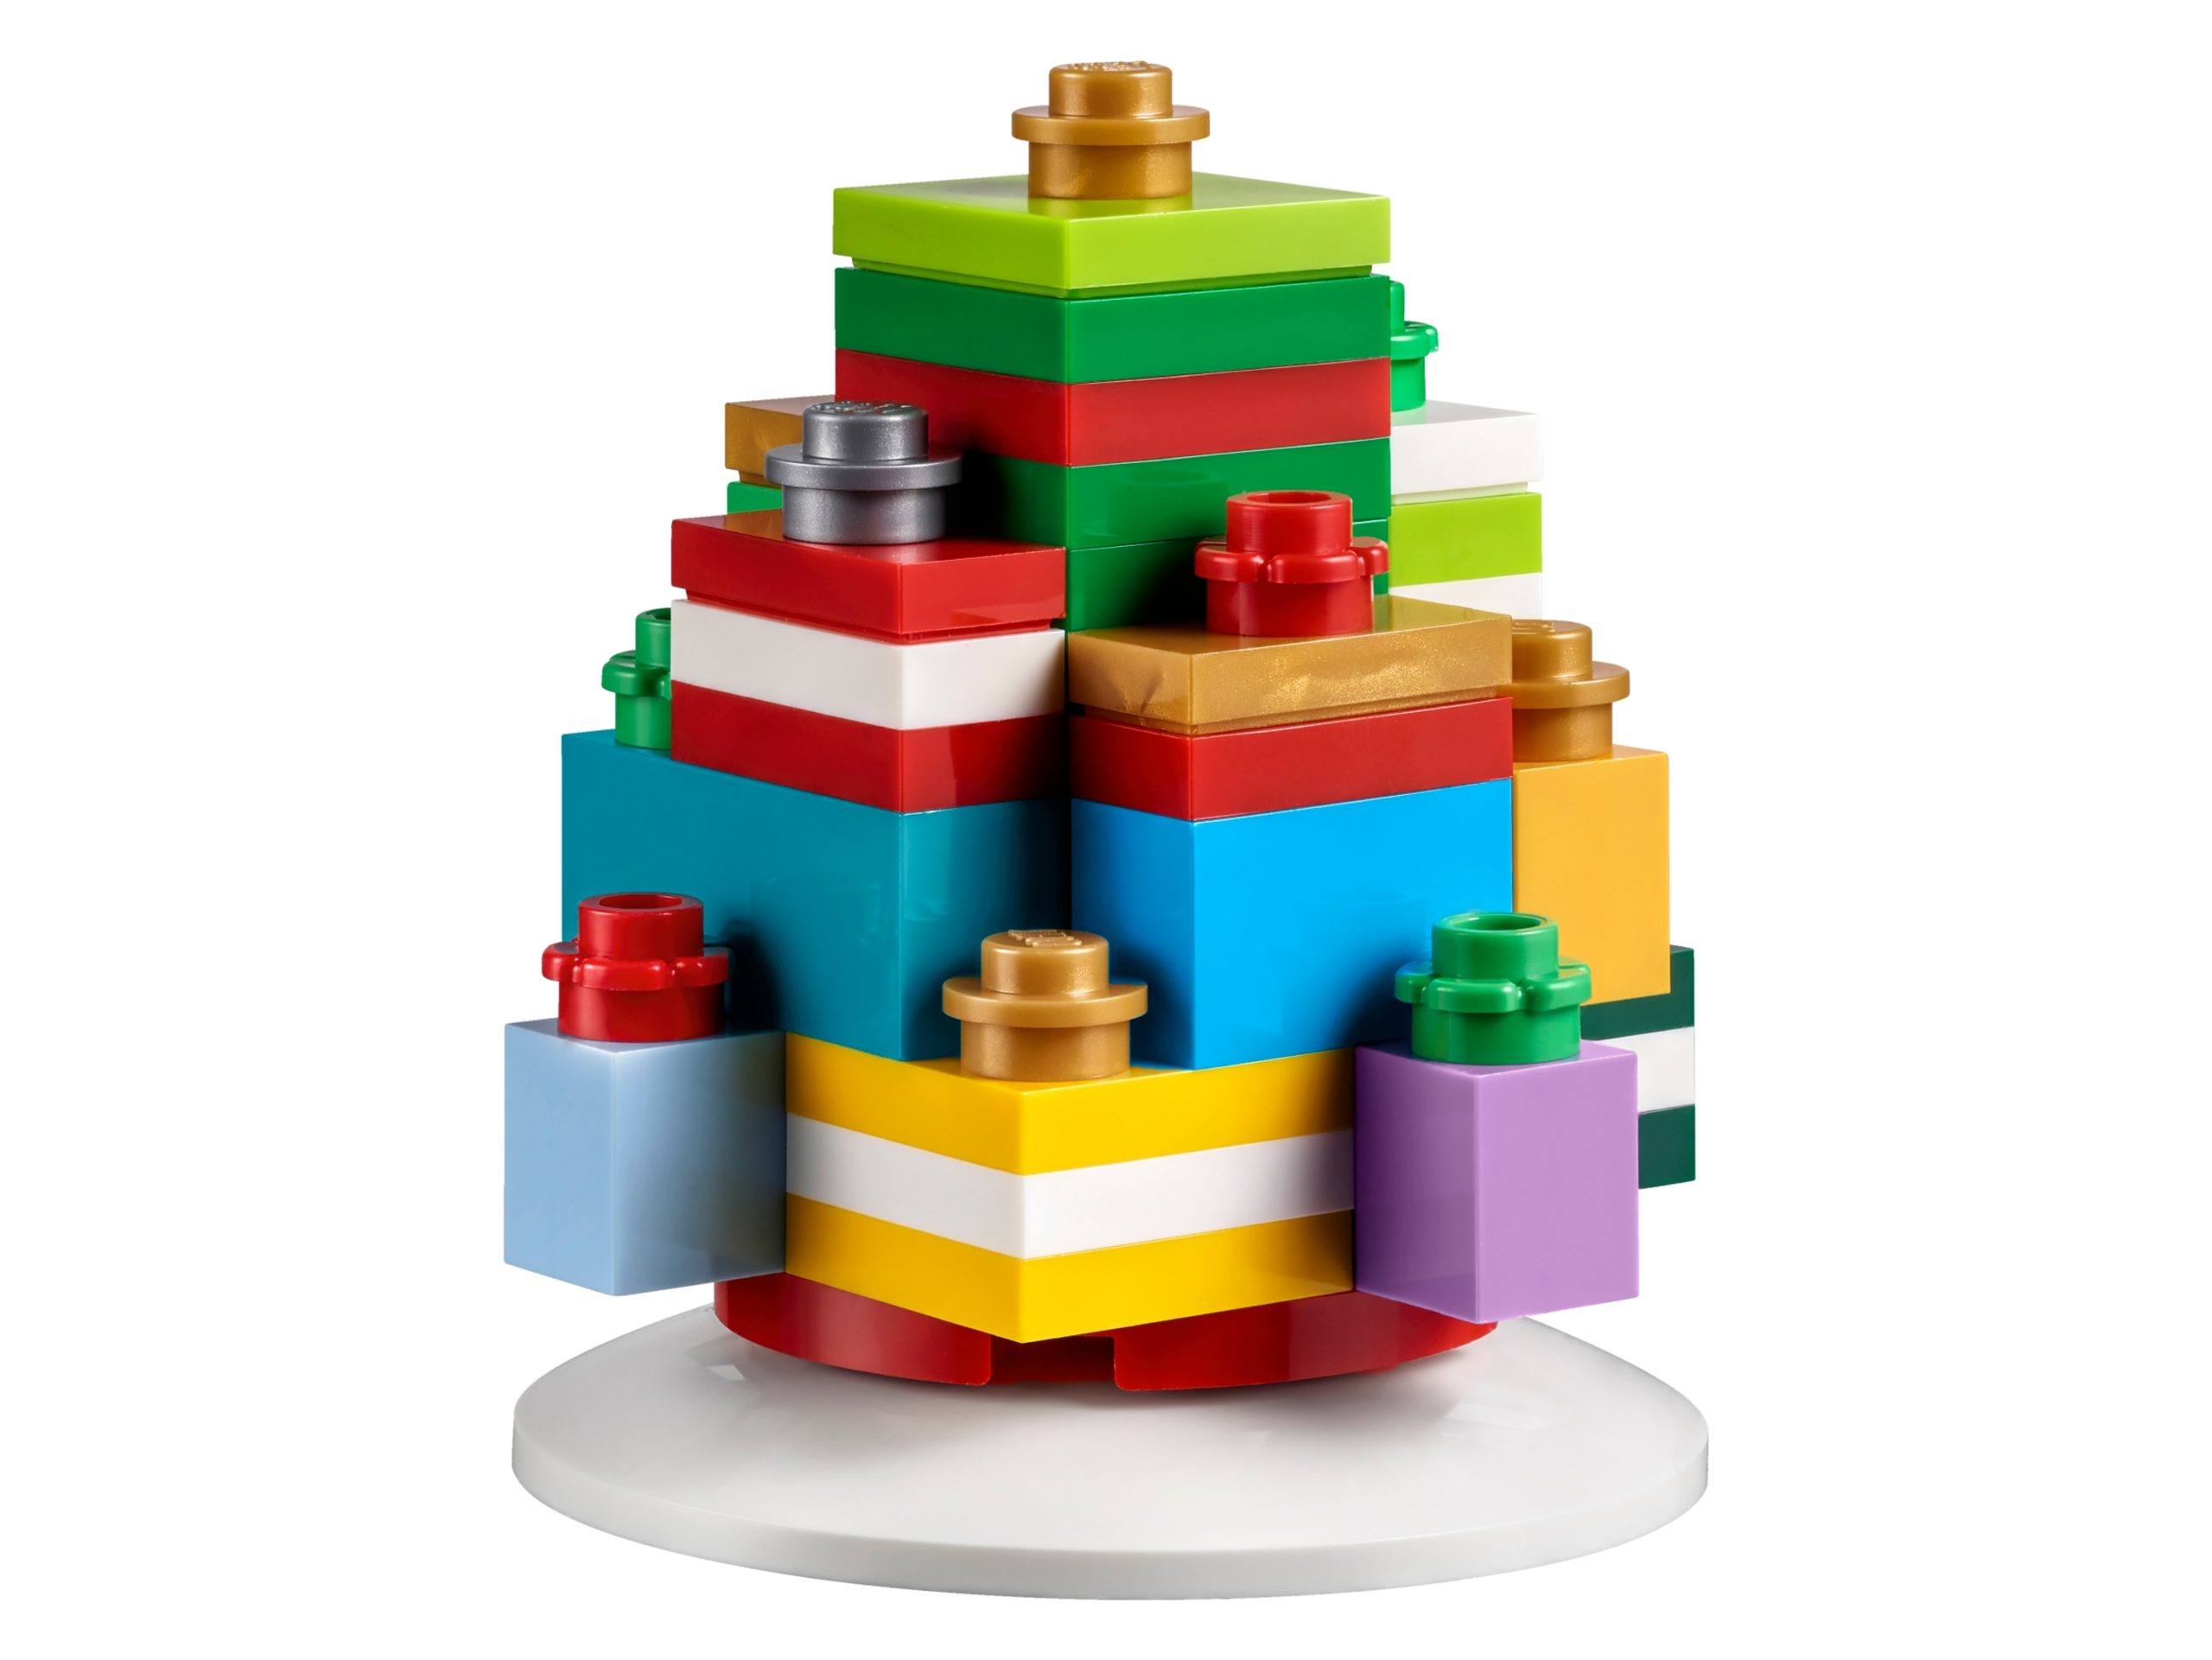 lego 853815 gifts holiday ornament scaled